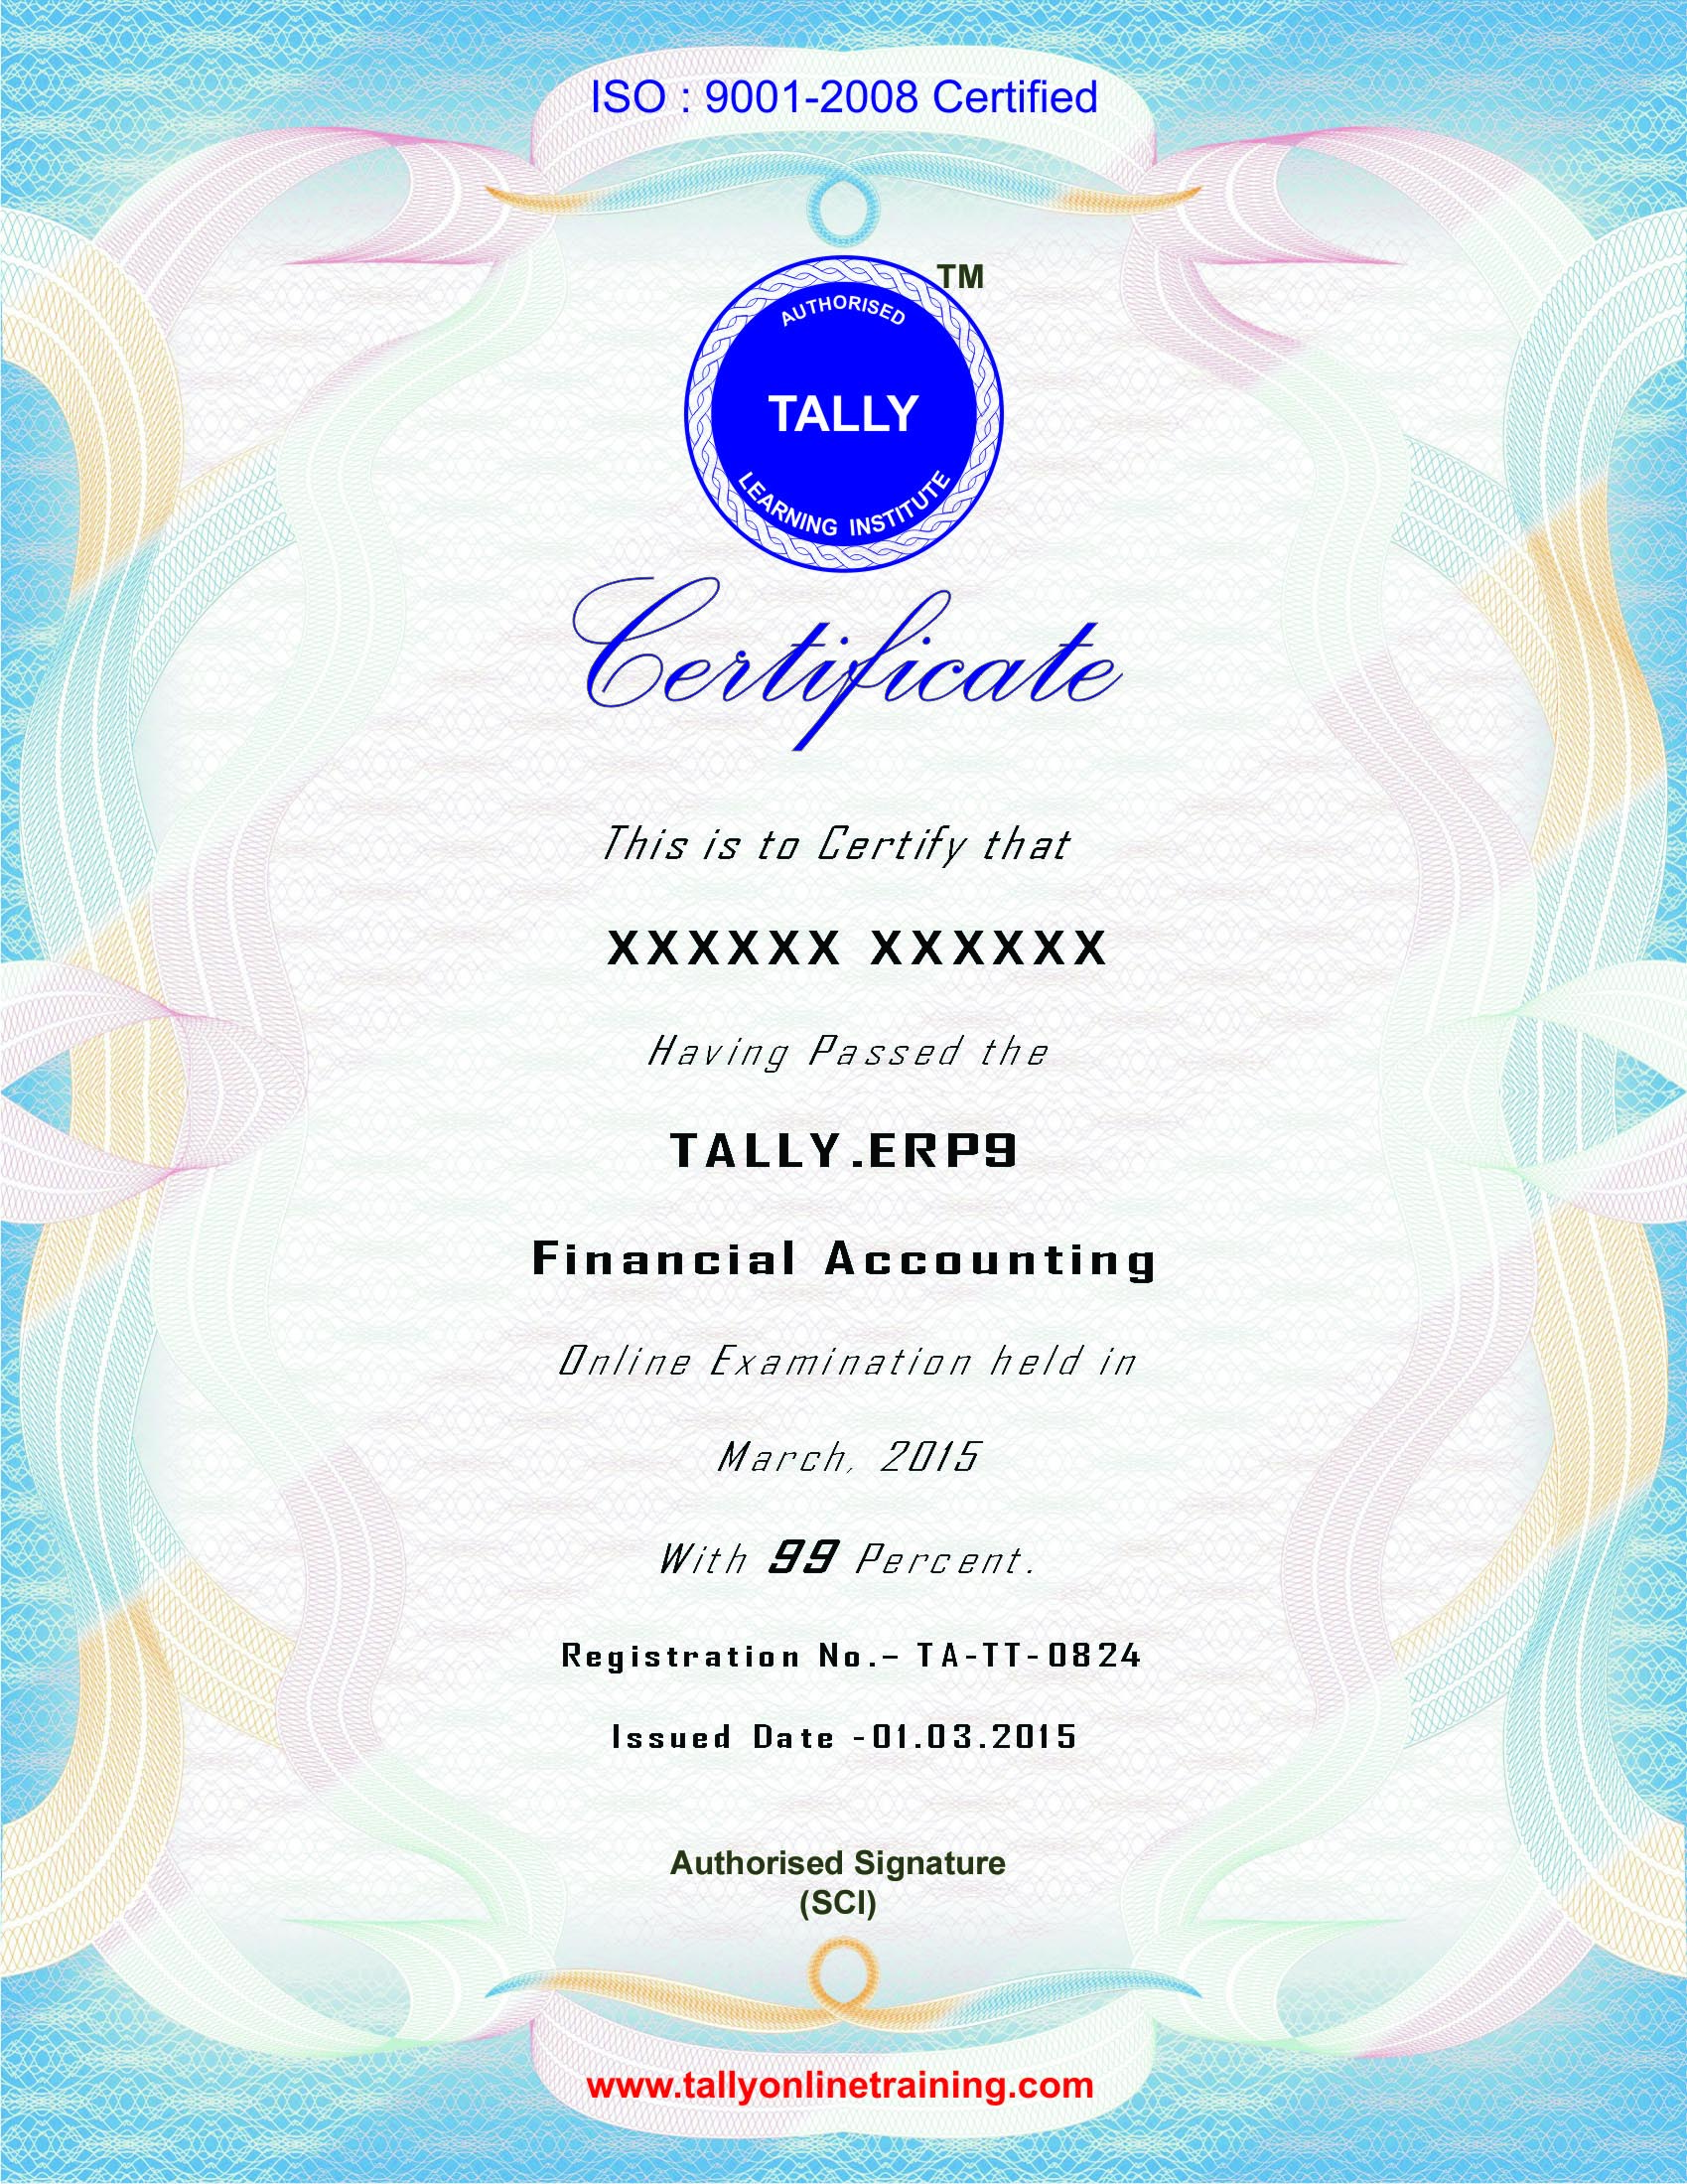 Tally Online Test Certificate